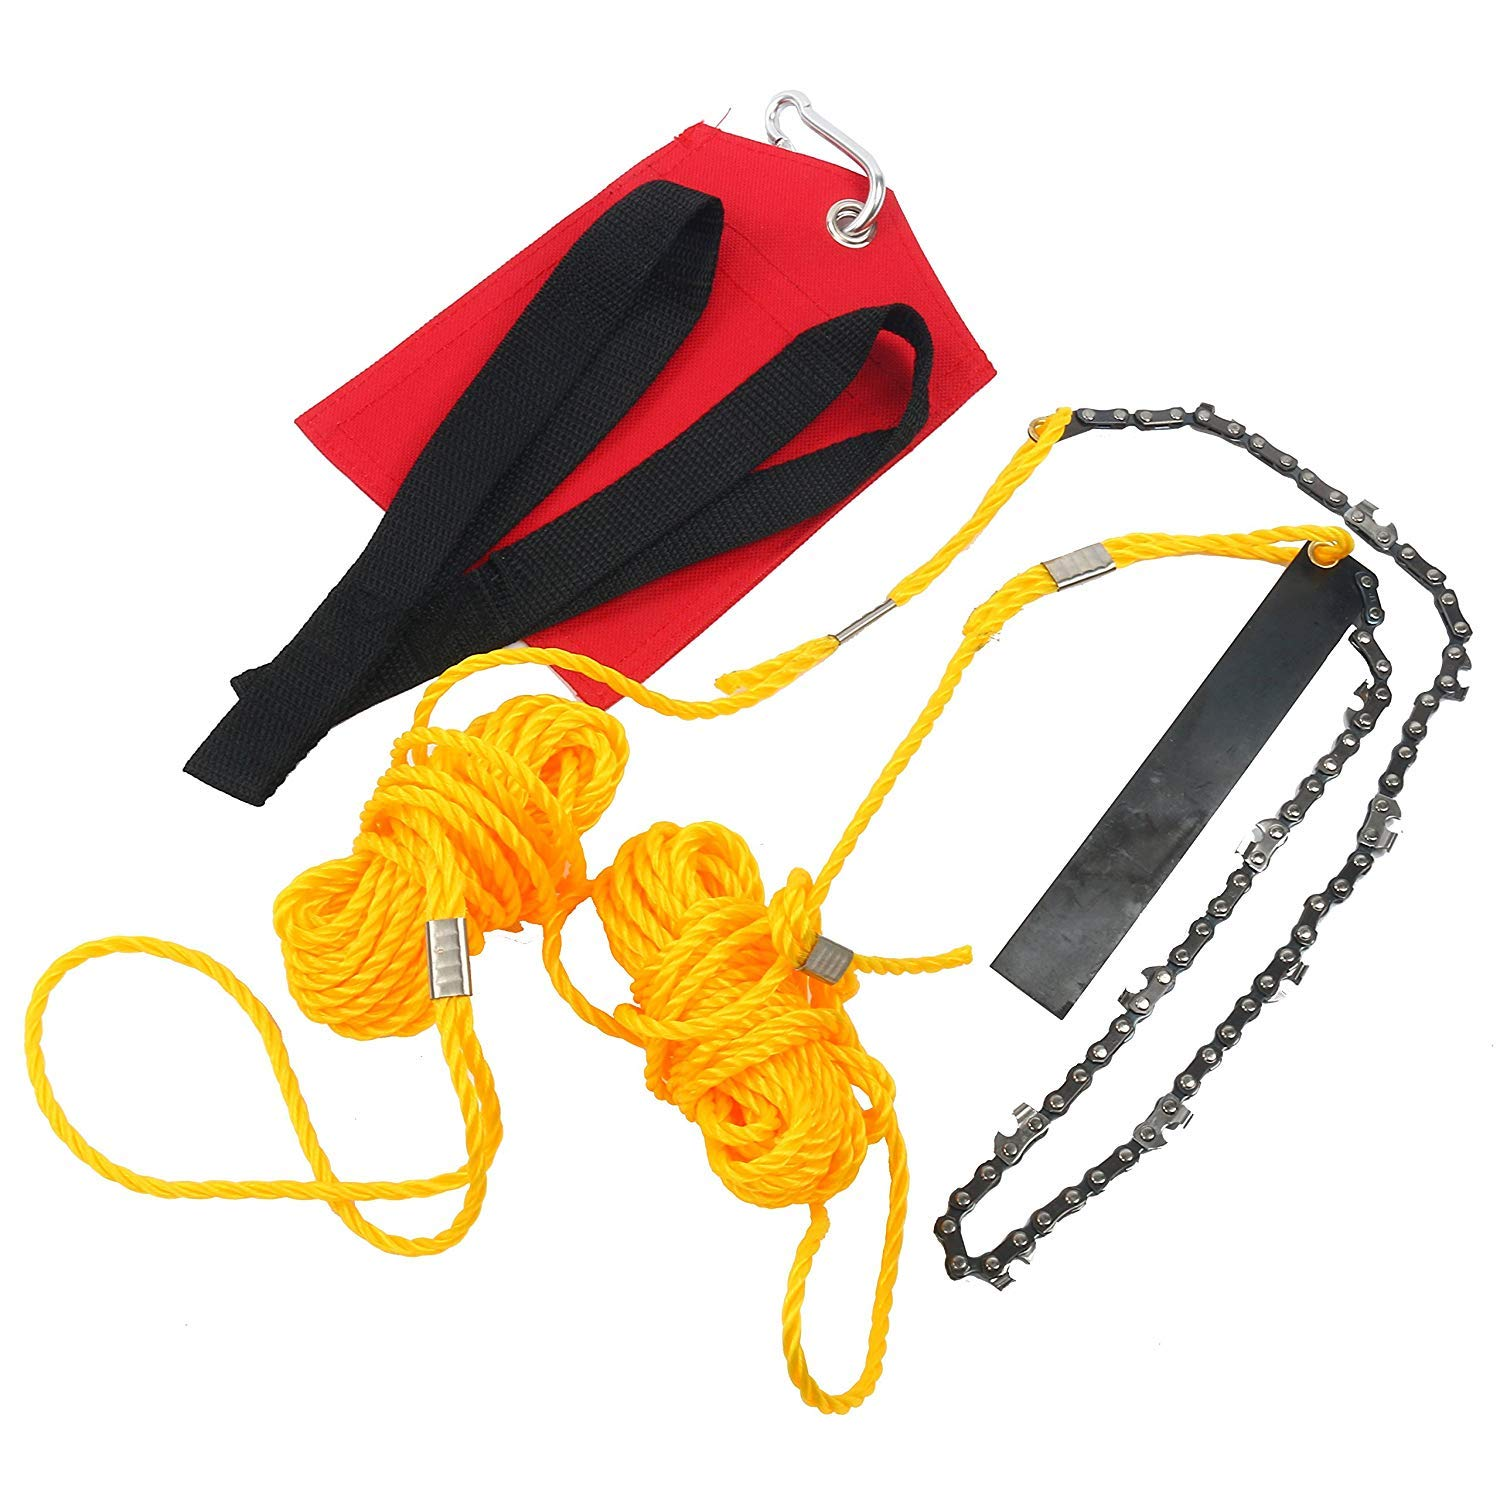 YaeTek Rope-and-Chain Saw - 48 Inch High Reach Limb Hand Chain Saw - Comes with Ropes, Throwing Weight Pouch Bag (48 Inch)